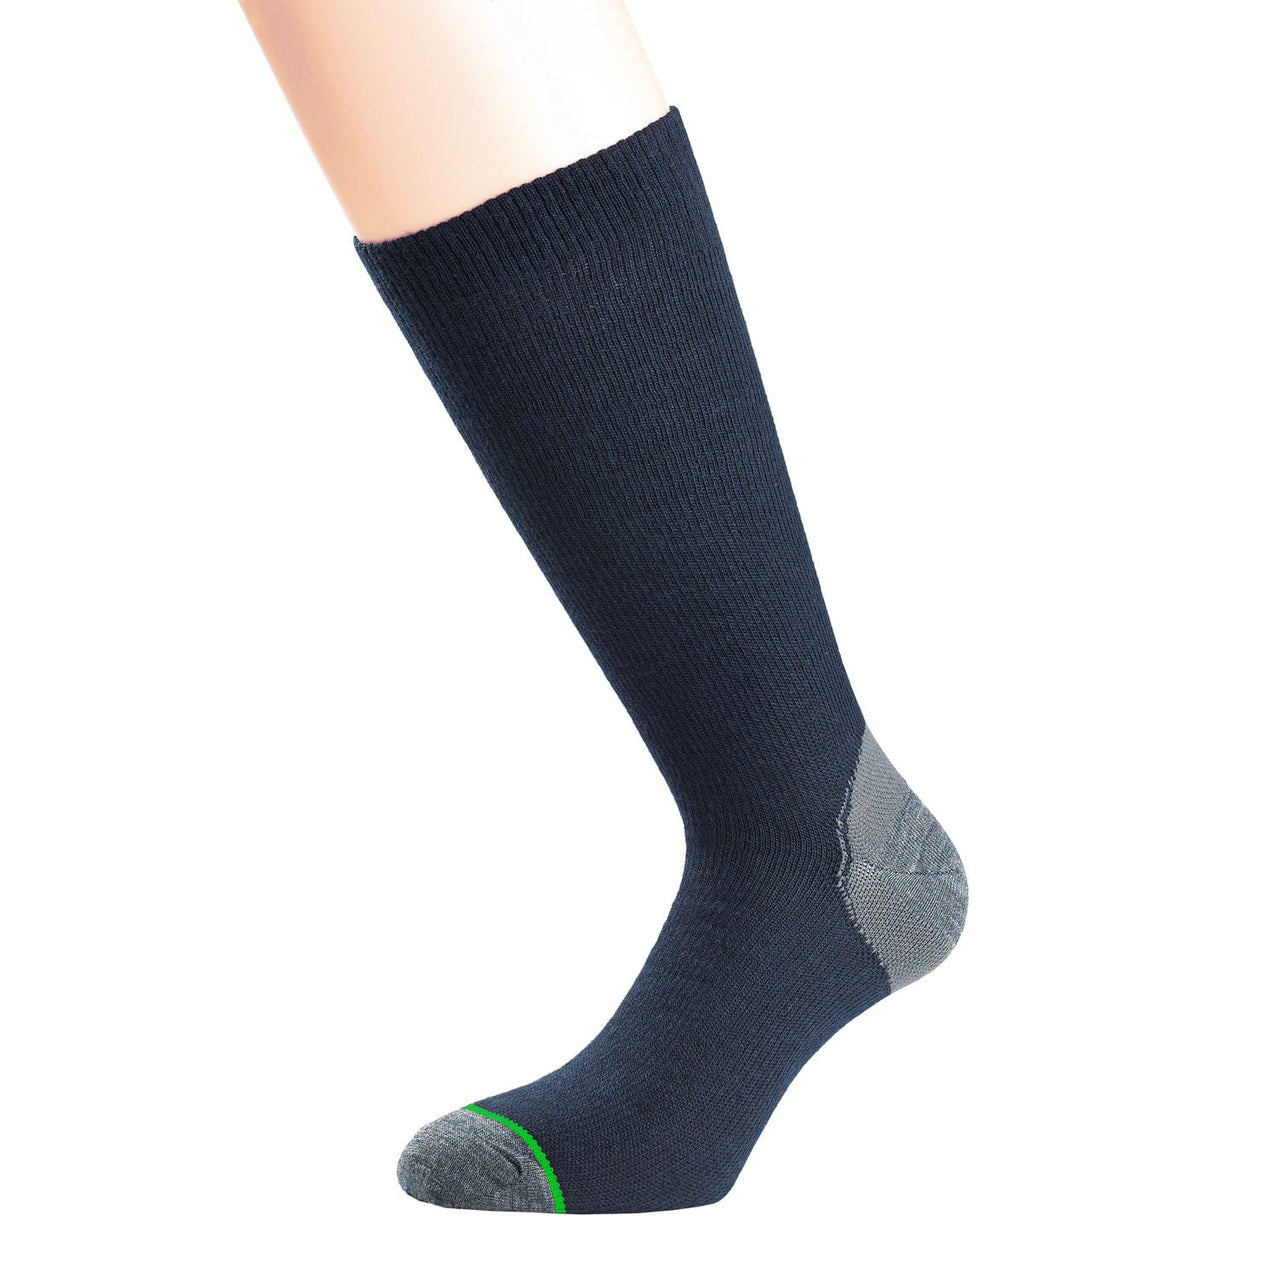 Men's Lightweight Double Layer Walking Sock